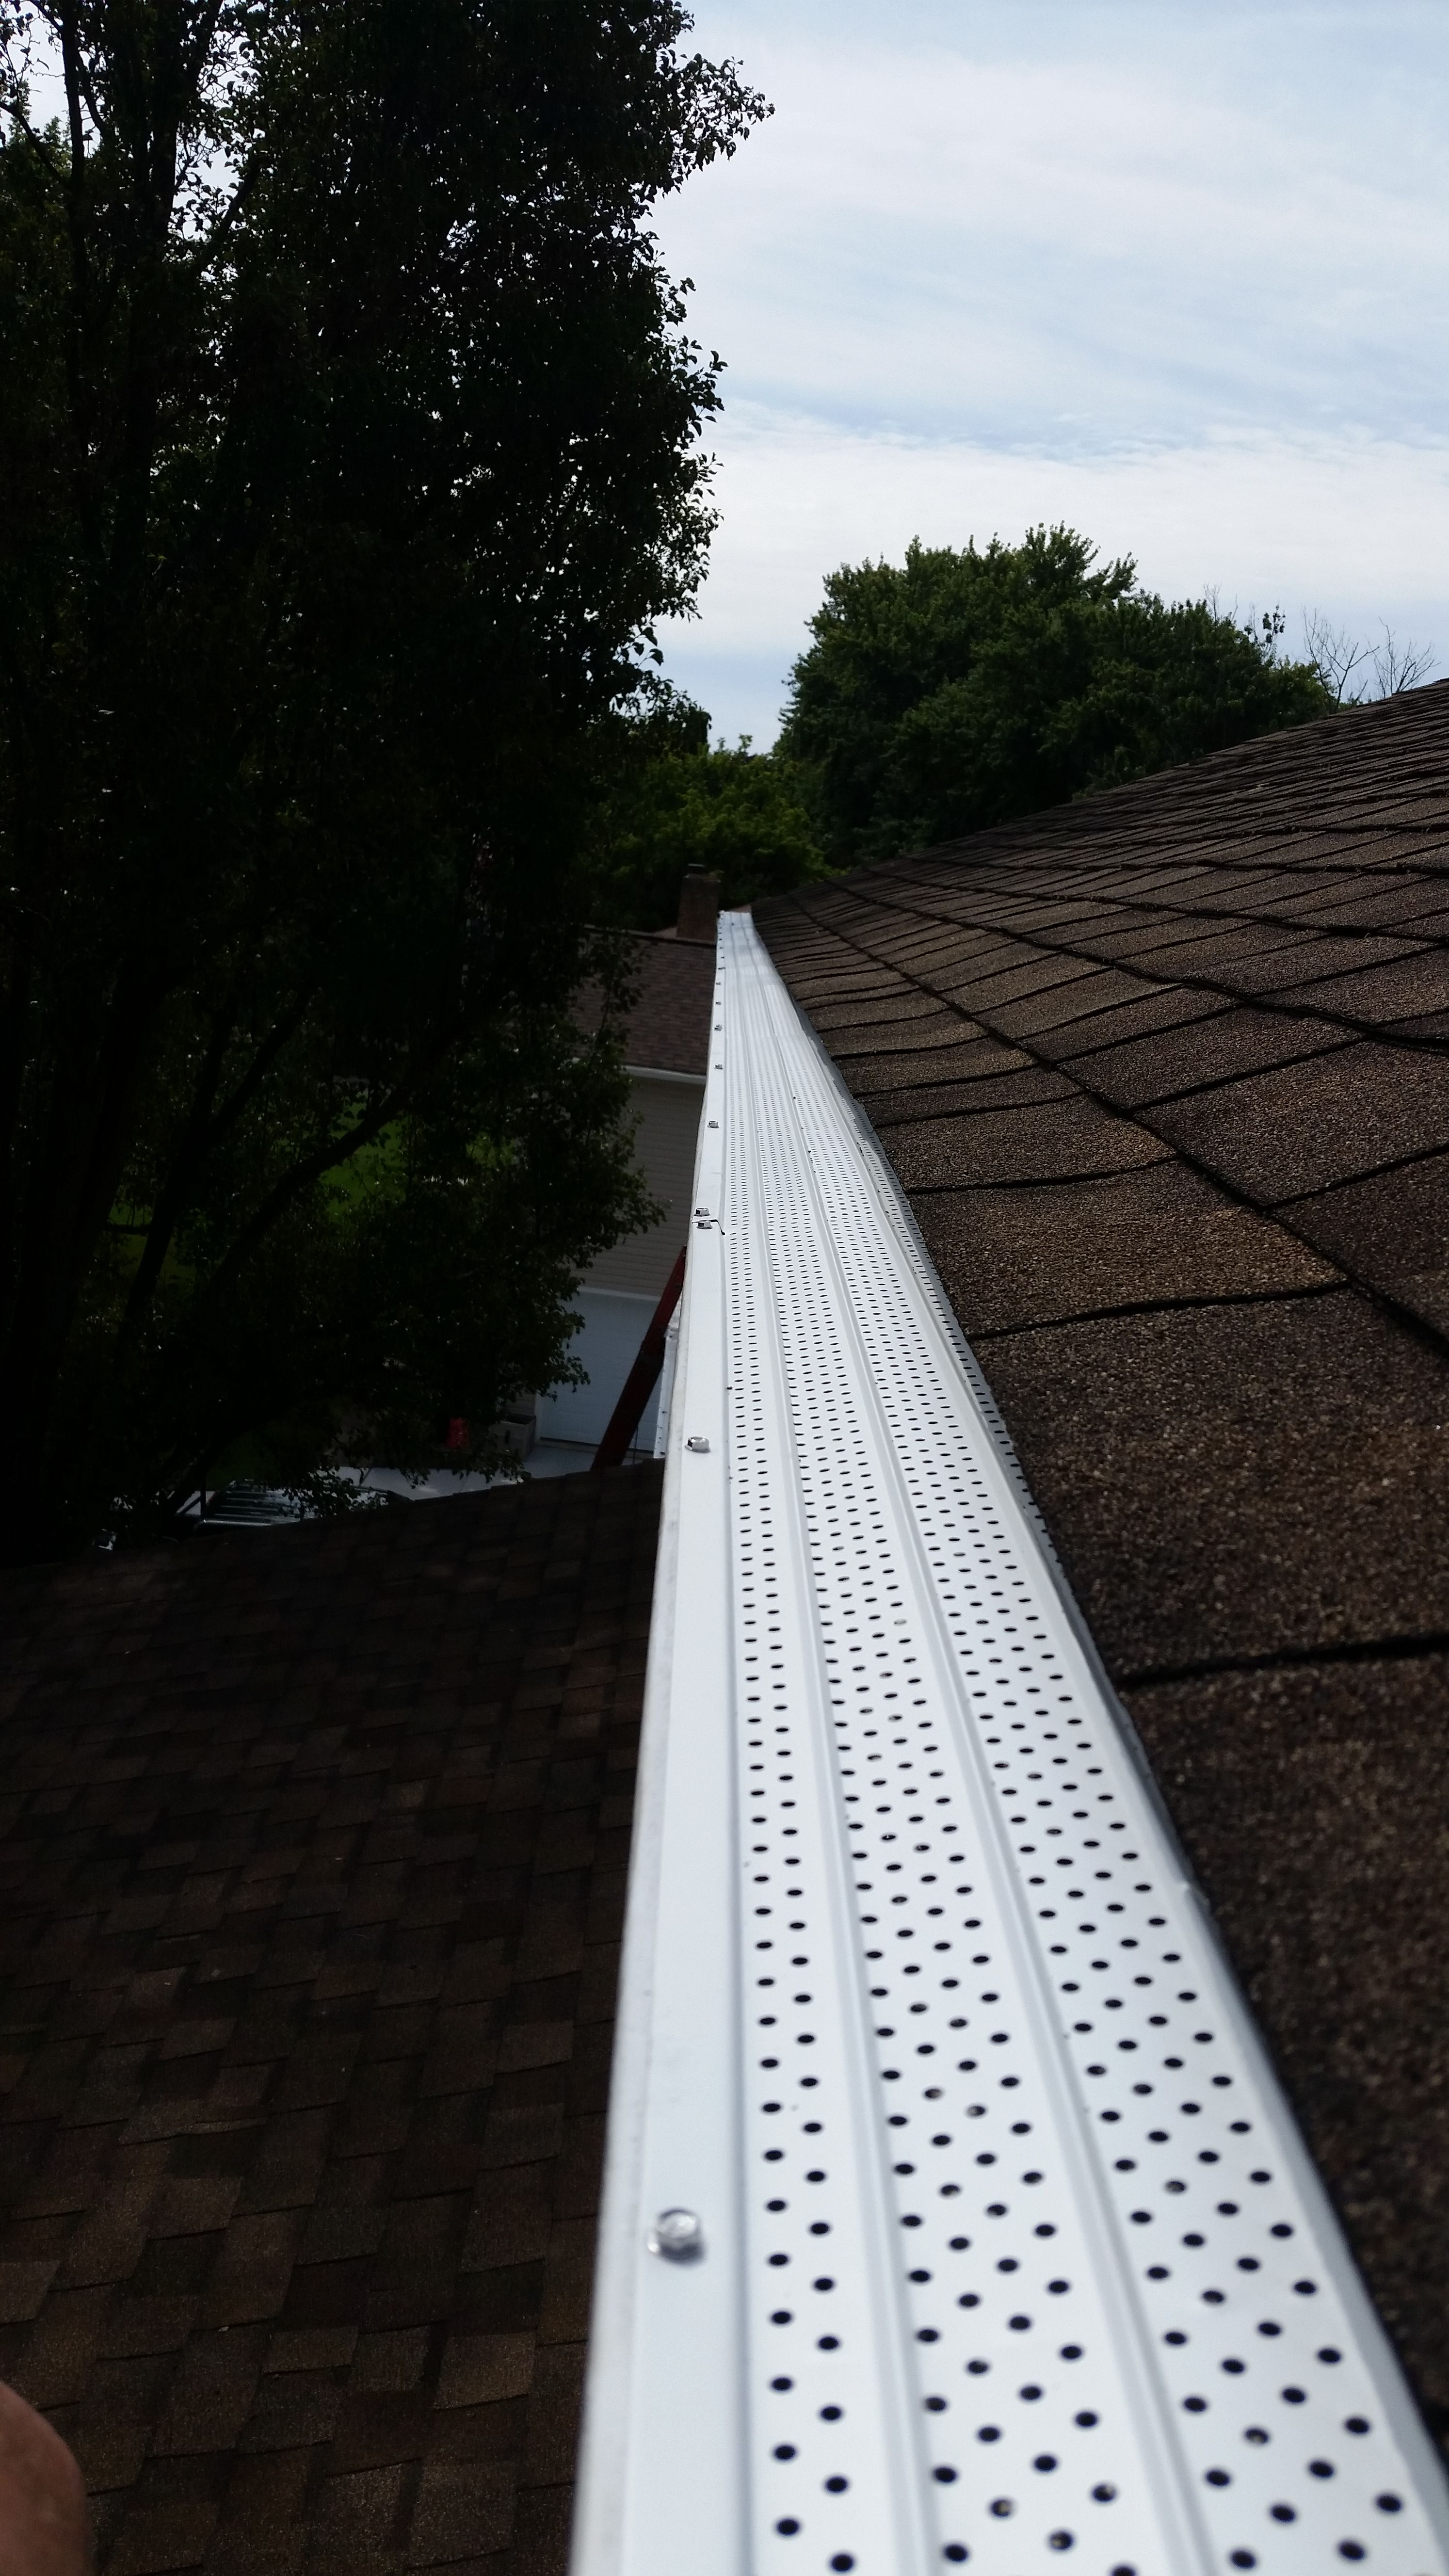 How much for gutter guards installed - Providing Gutter Guard Installation In The Hamburg Pa Leesport Pa Area At The Guaranteed Lowest Prices Gutterwolfe